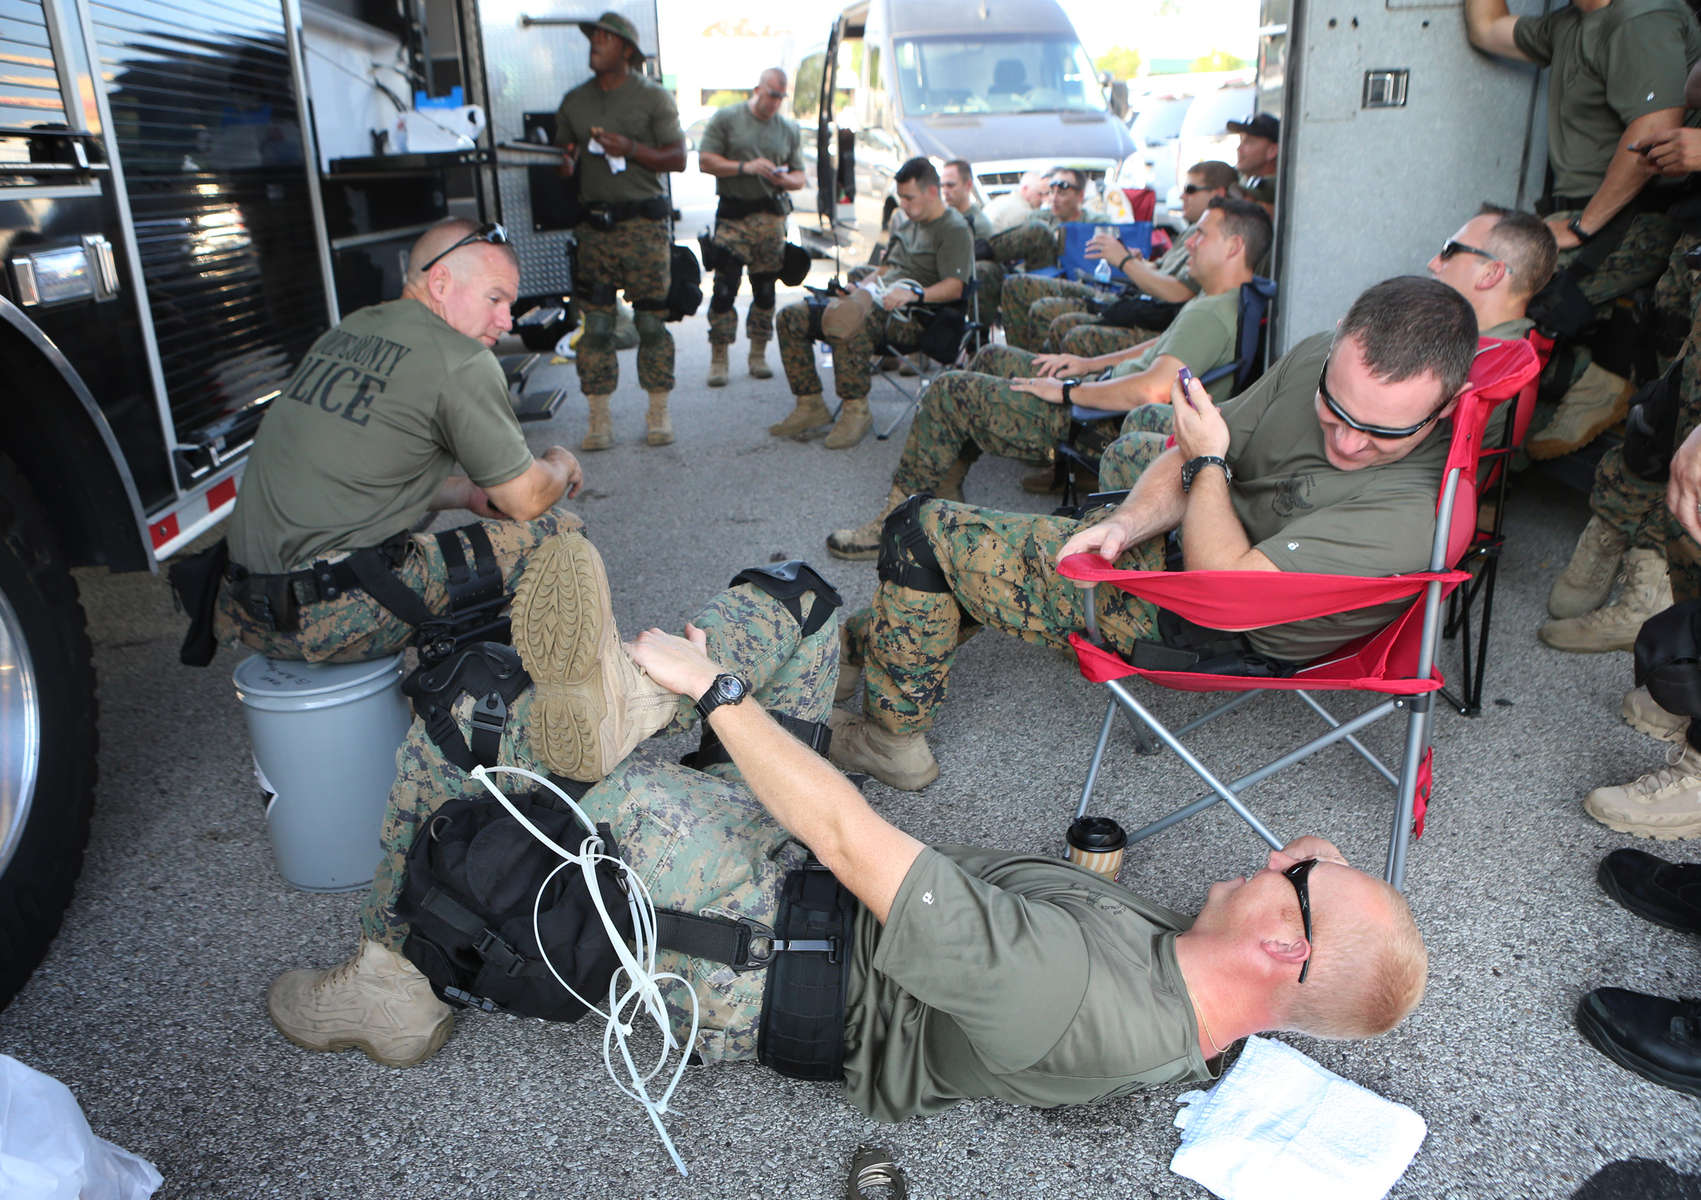 Members of the St. Louis County Police tactical team watch movies at the command center as they wait for a call to help deal with crowds of people along W. Florissant Road in Ferguson, Mo. on Monday, Aug. 18, 2014.Photo By David Carson, dcarson@post-dispatch.com